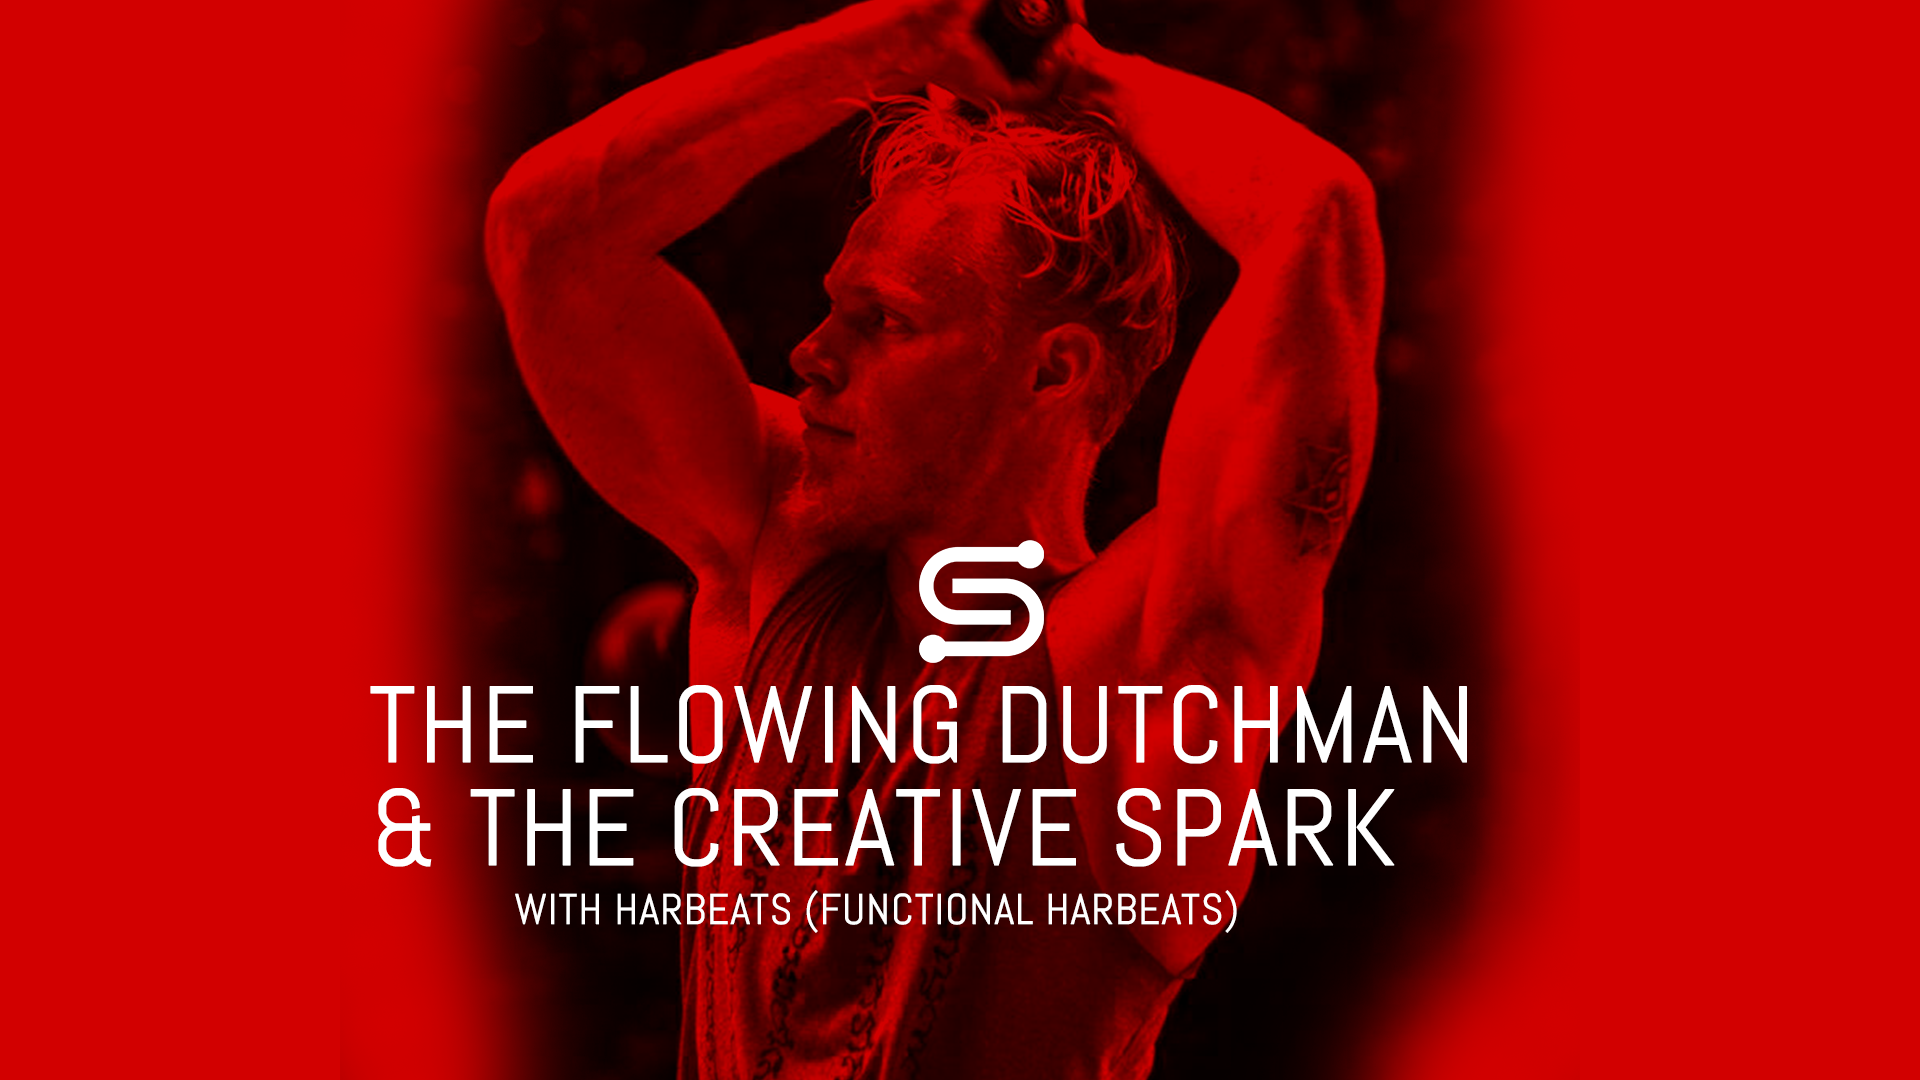 The Flowing Dutchman & The Creative Spark with Harbeats